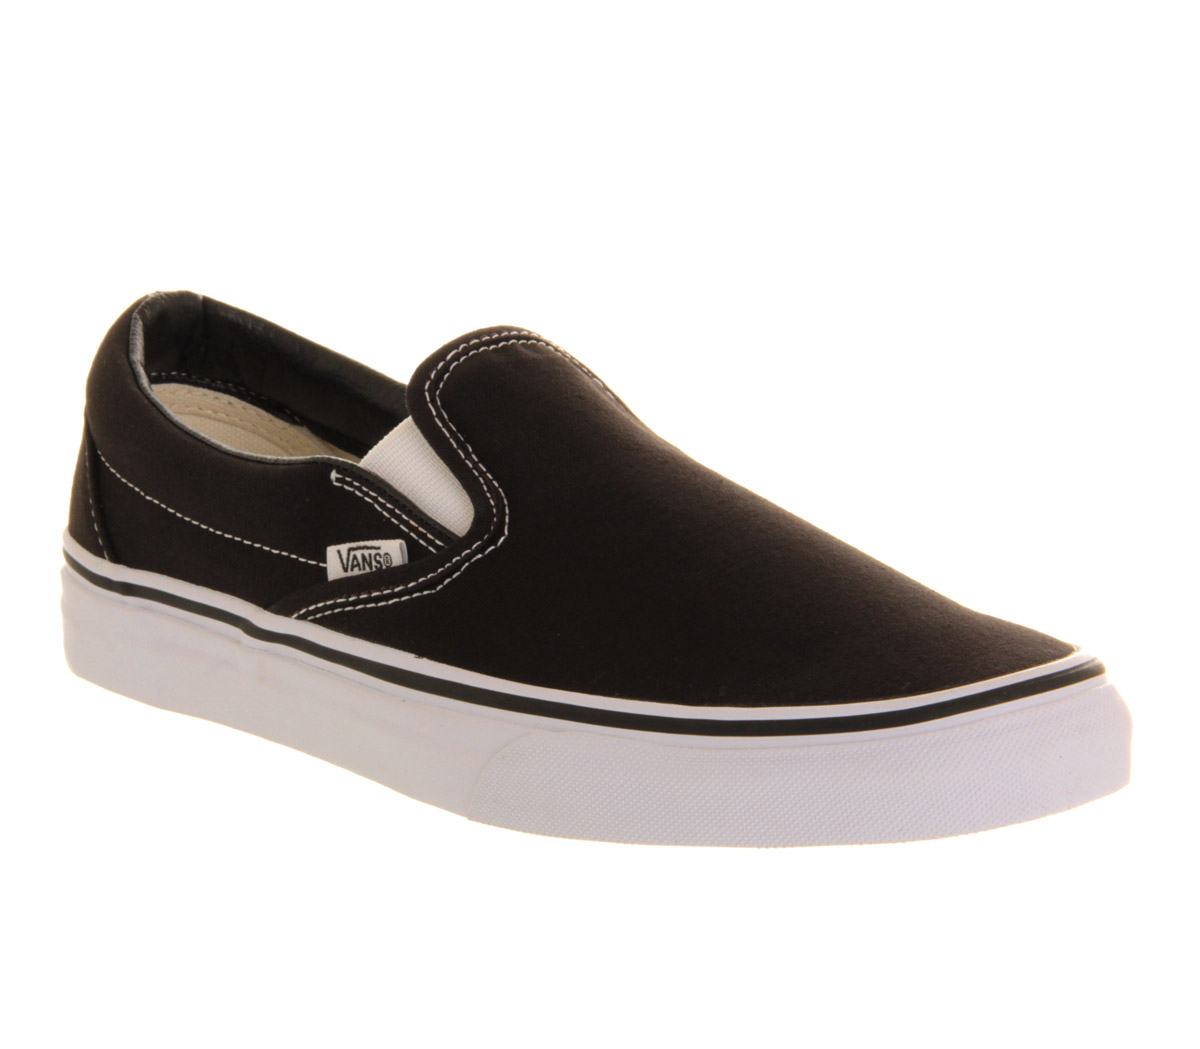 vans classic slip on black mens trainers